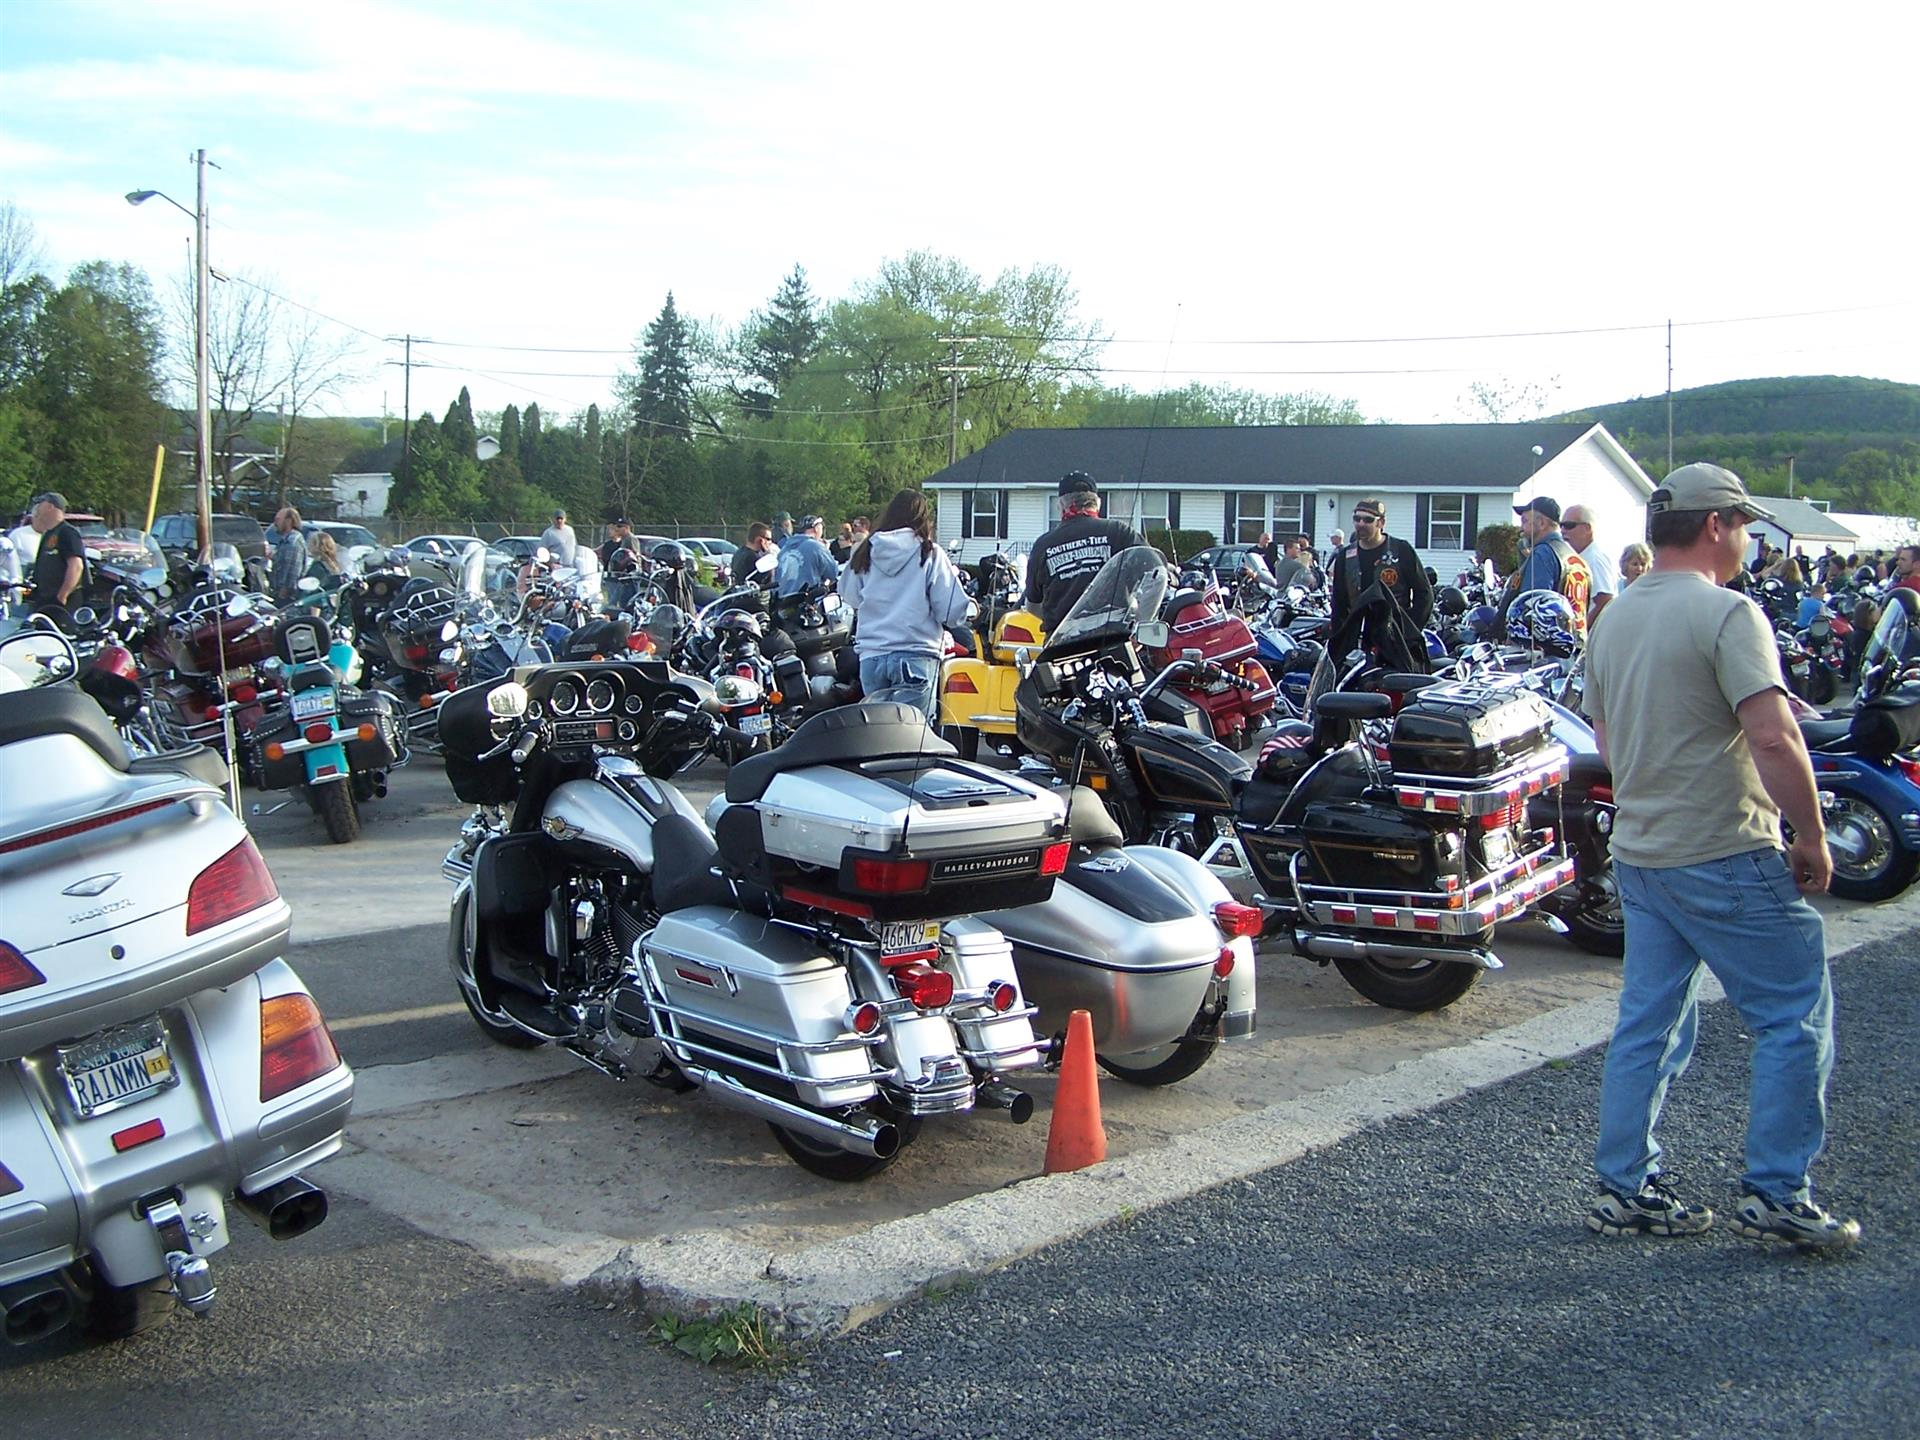 Many motorcycles in parking lot